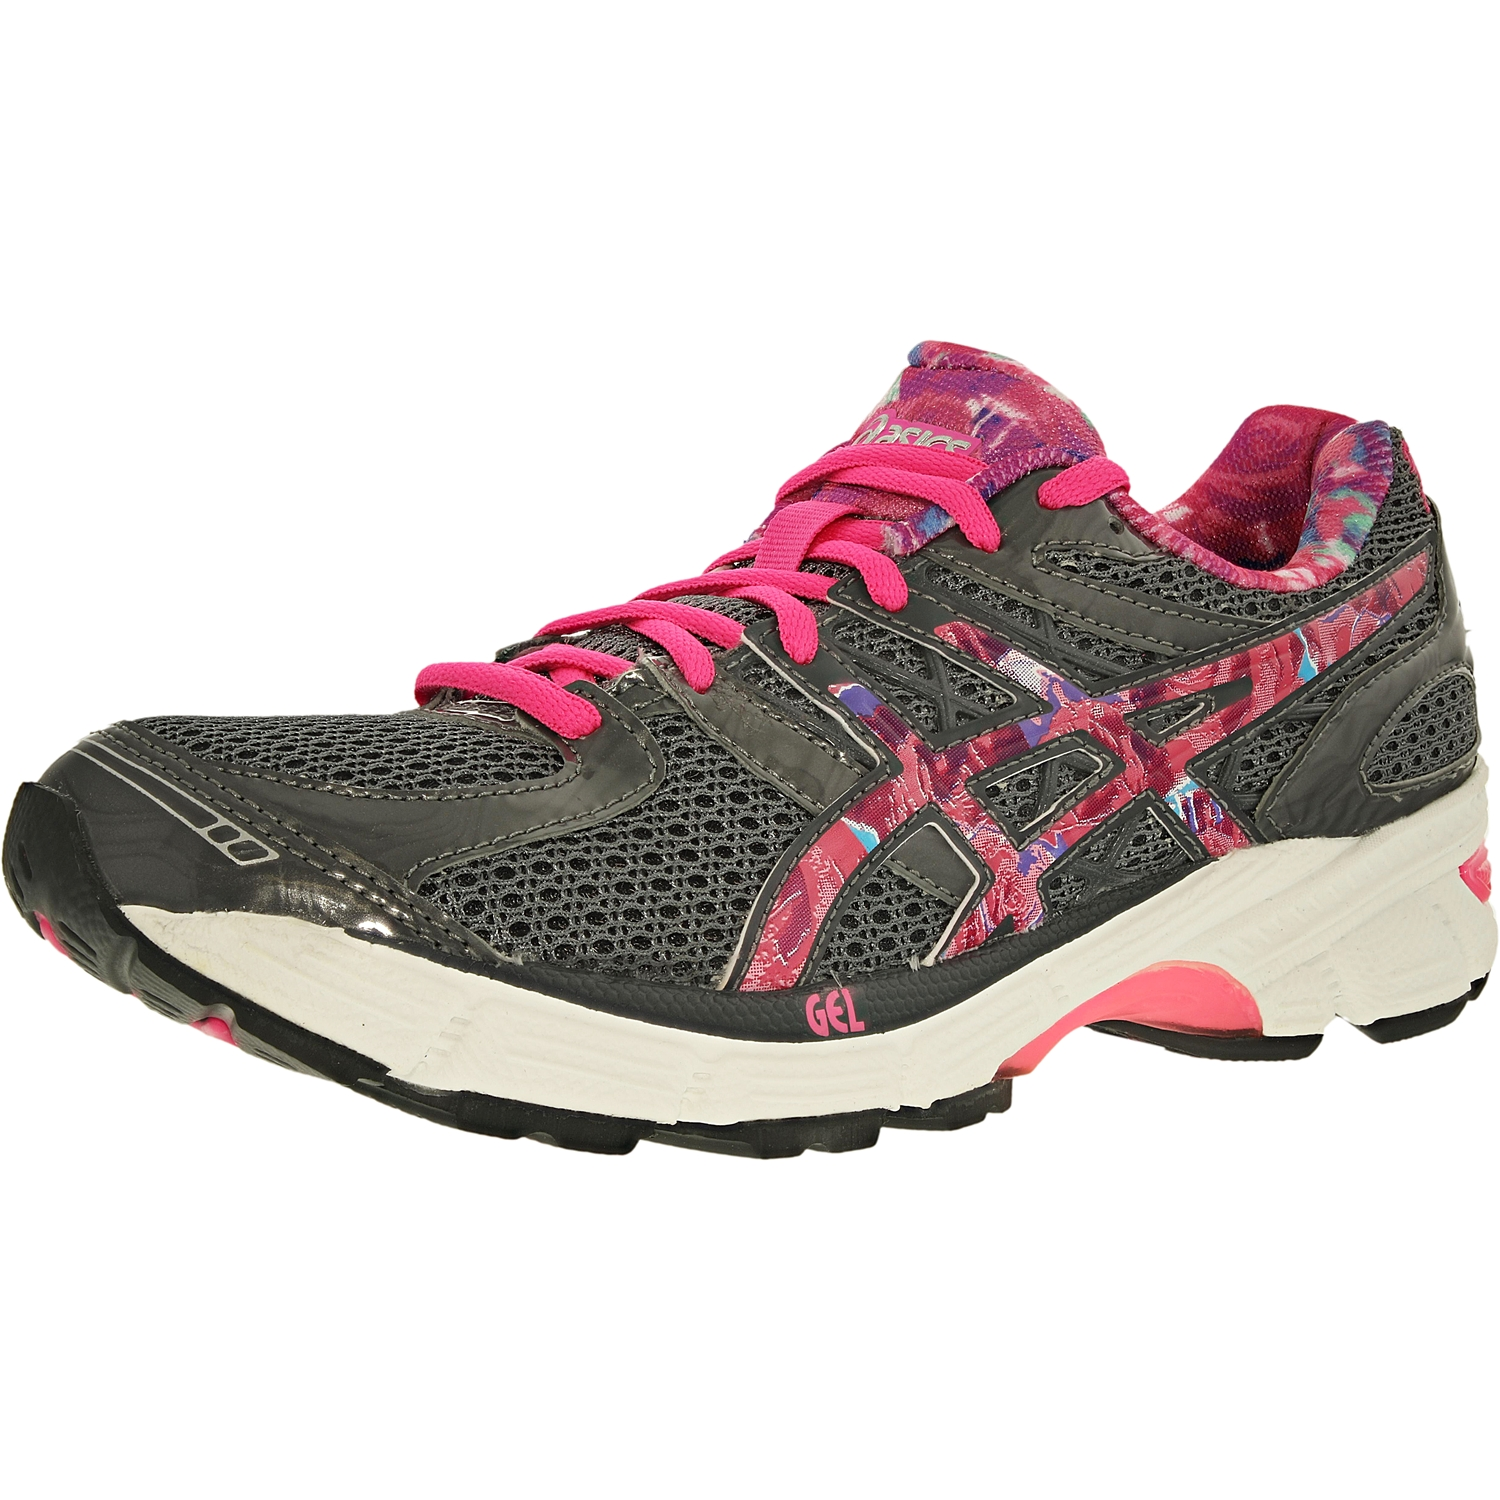 huge discount 2db76 adccc Asics Women's Gel-Enhance Ultra 3.0 Pr Titanium/Hot Pink/Pink Ribbon  Ankle-High Running Shoe - 6.5M